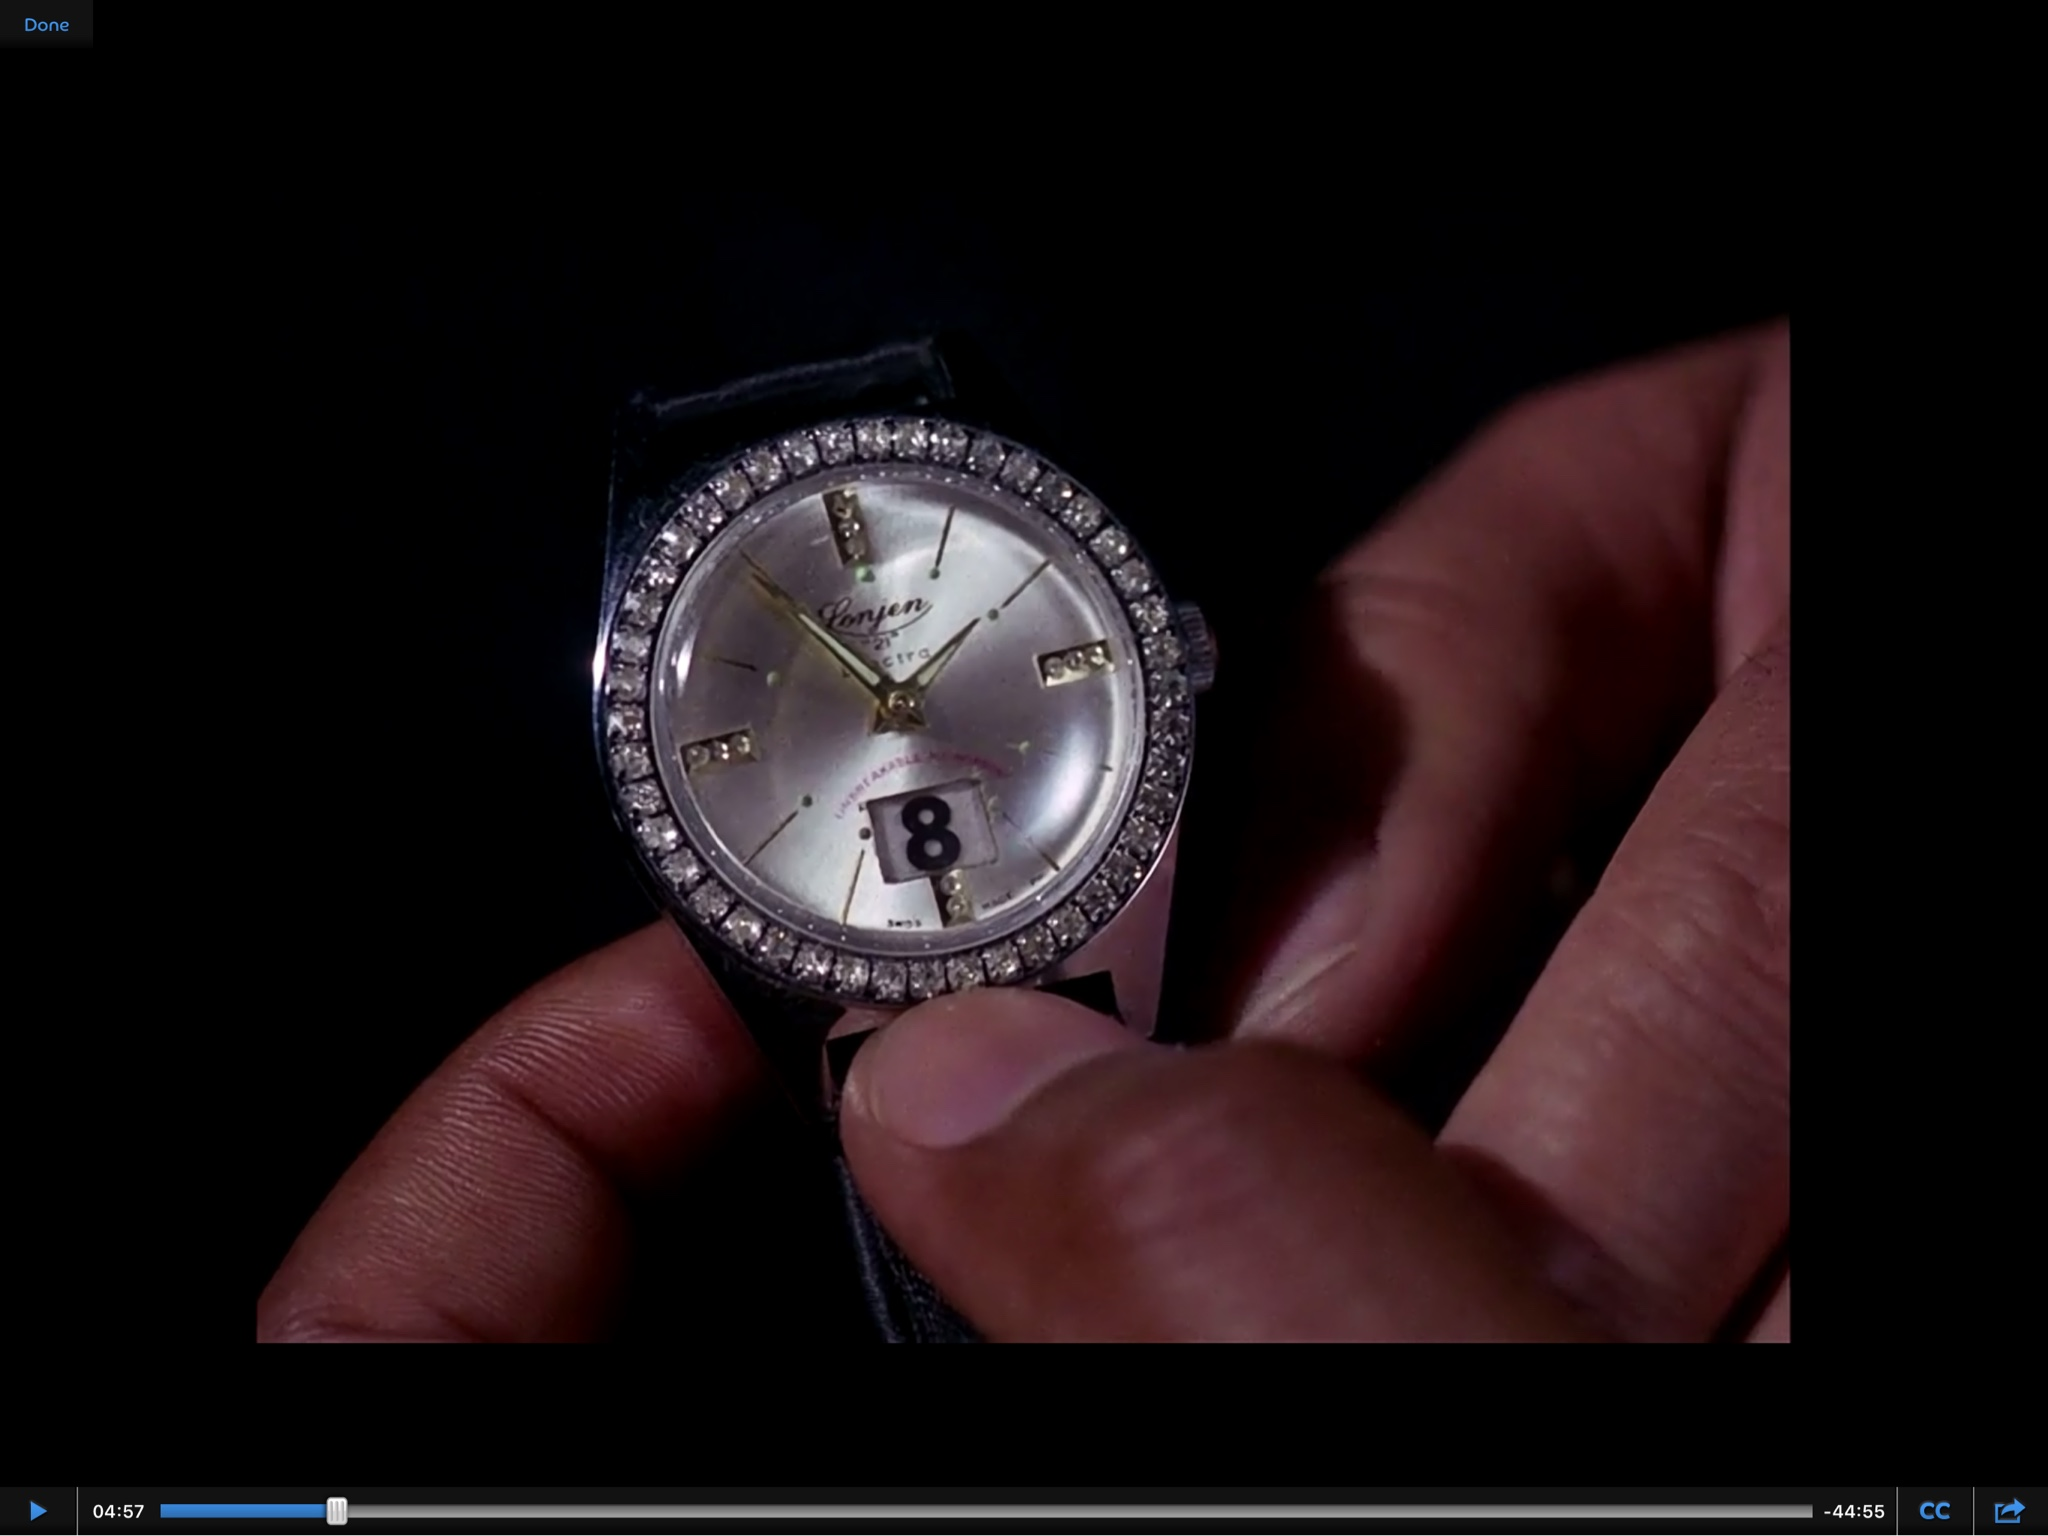 mission watchuseek baselworld report untitled watches edox com live impossible